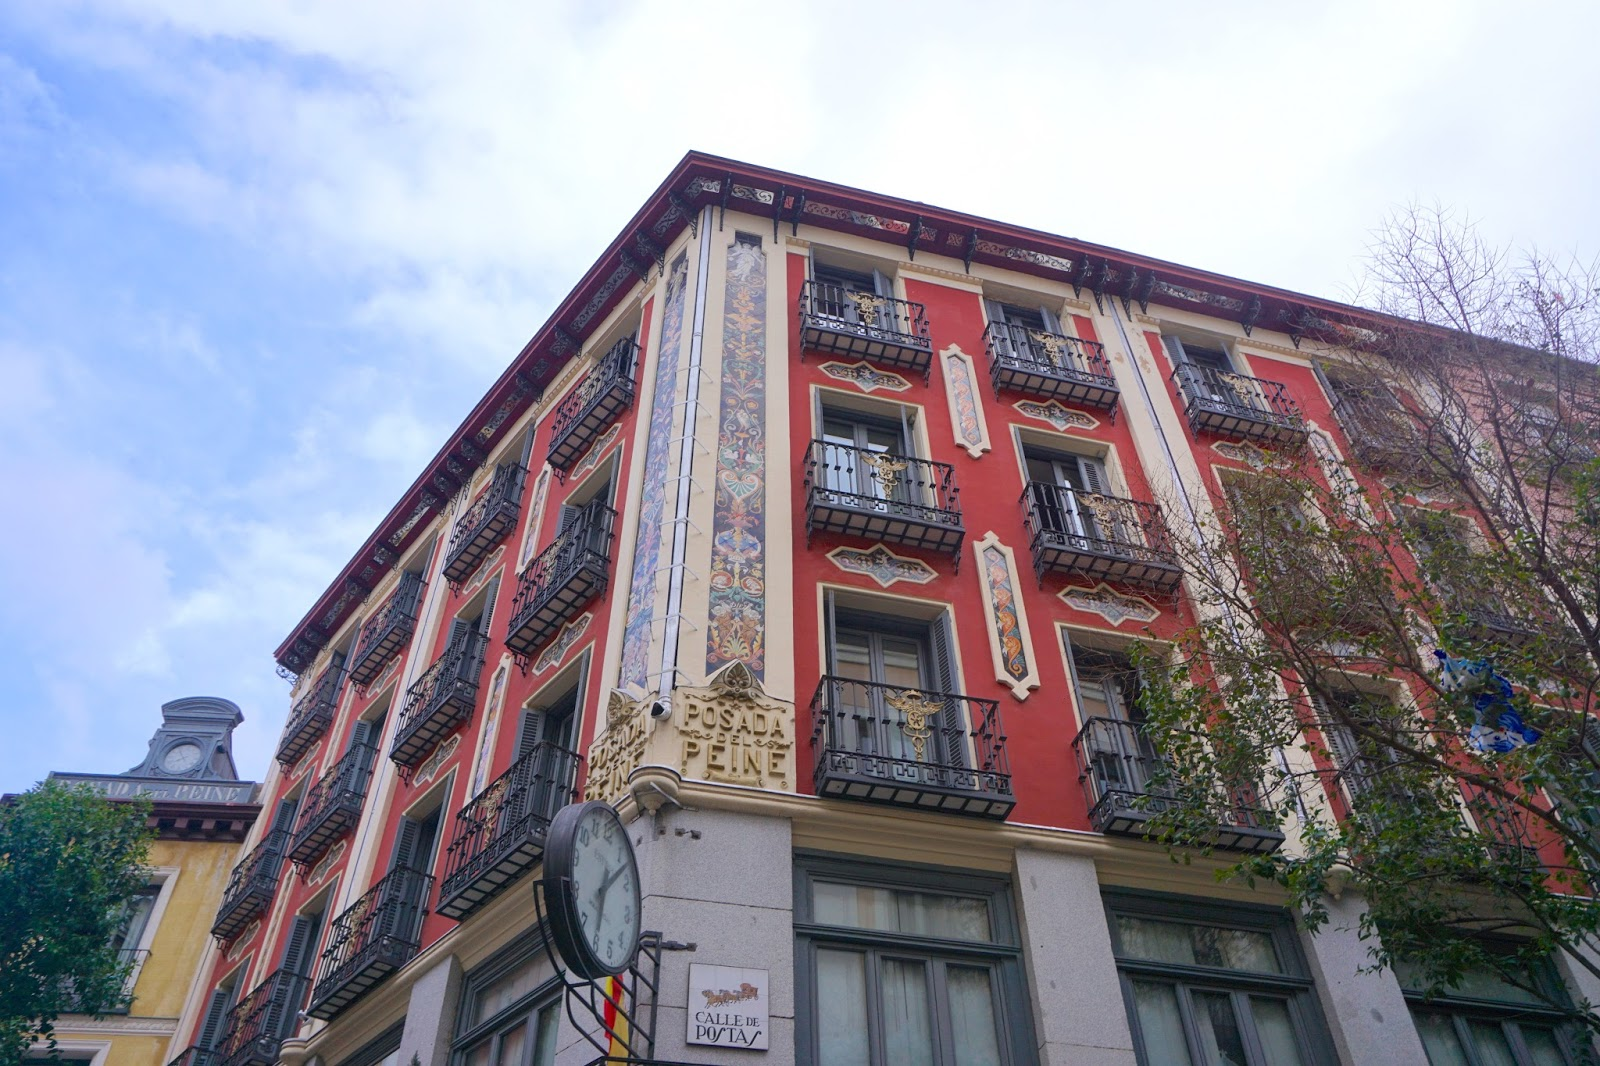 The intricate patterns and designs on a wall in Madrid above eye level